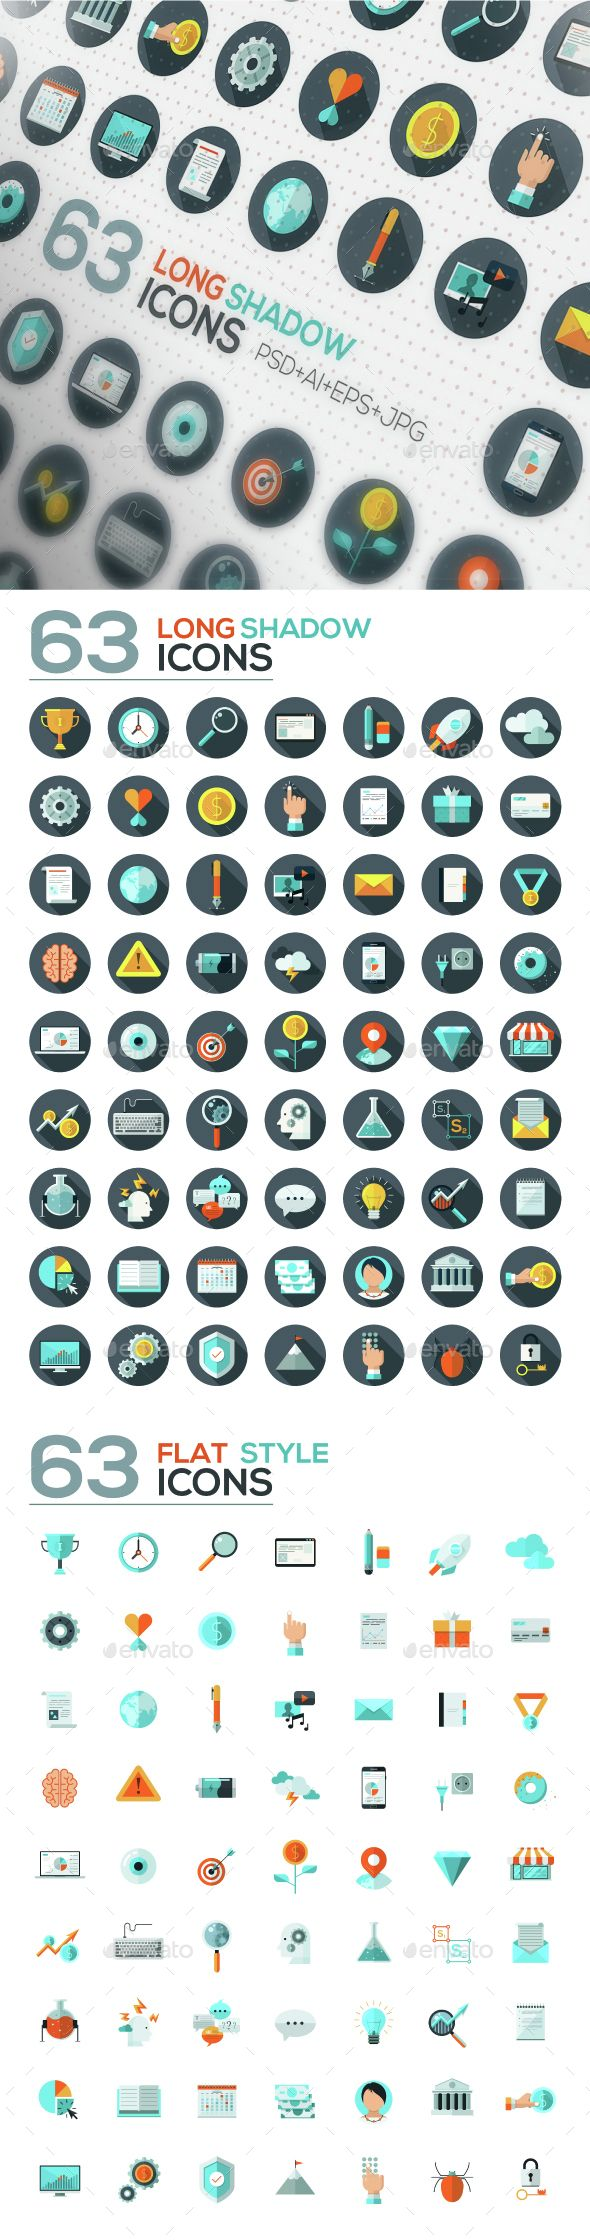 126 Flat Designed Icons Set. Download here: http://graphicriver.net/item/126-flat-designed-icons-set/14712804?ref=ksioks